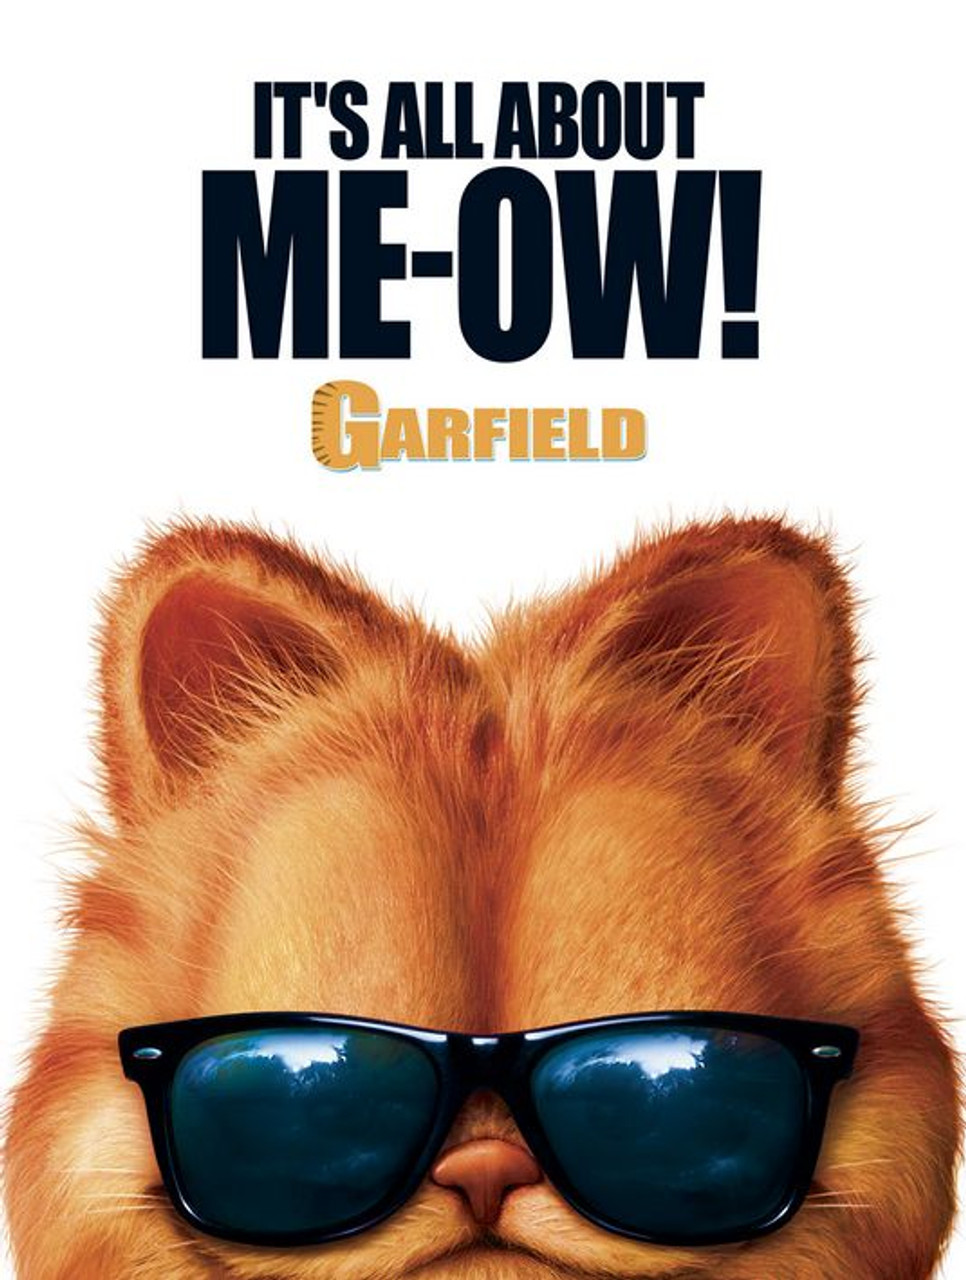 Ss6525428 Garfield The Movie Single Sided Advance Poster Buy Movie Posters At Starstills Com